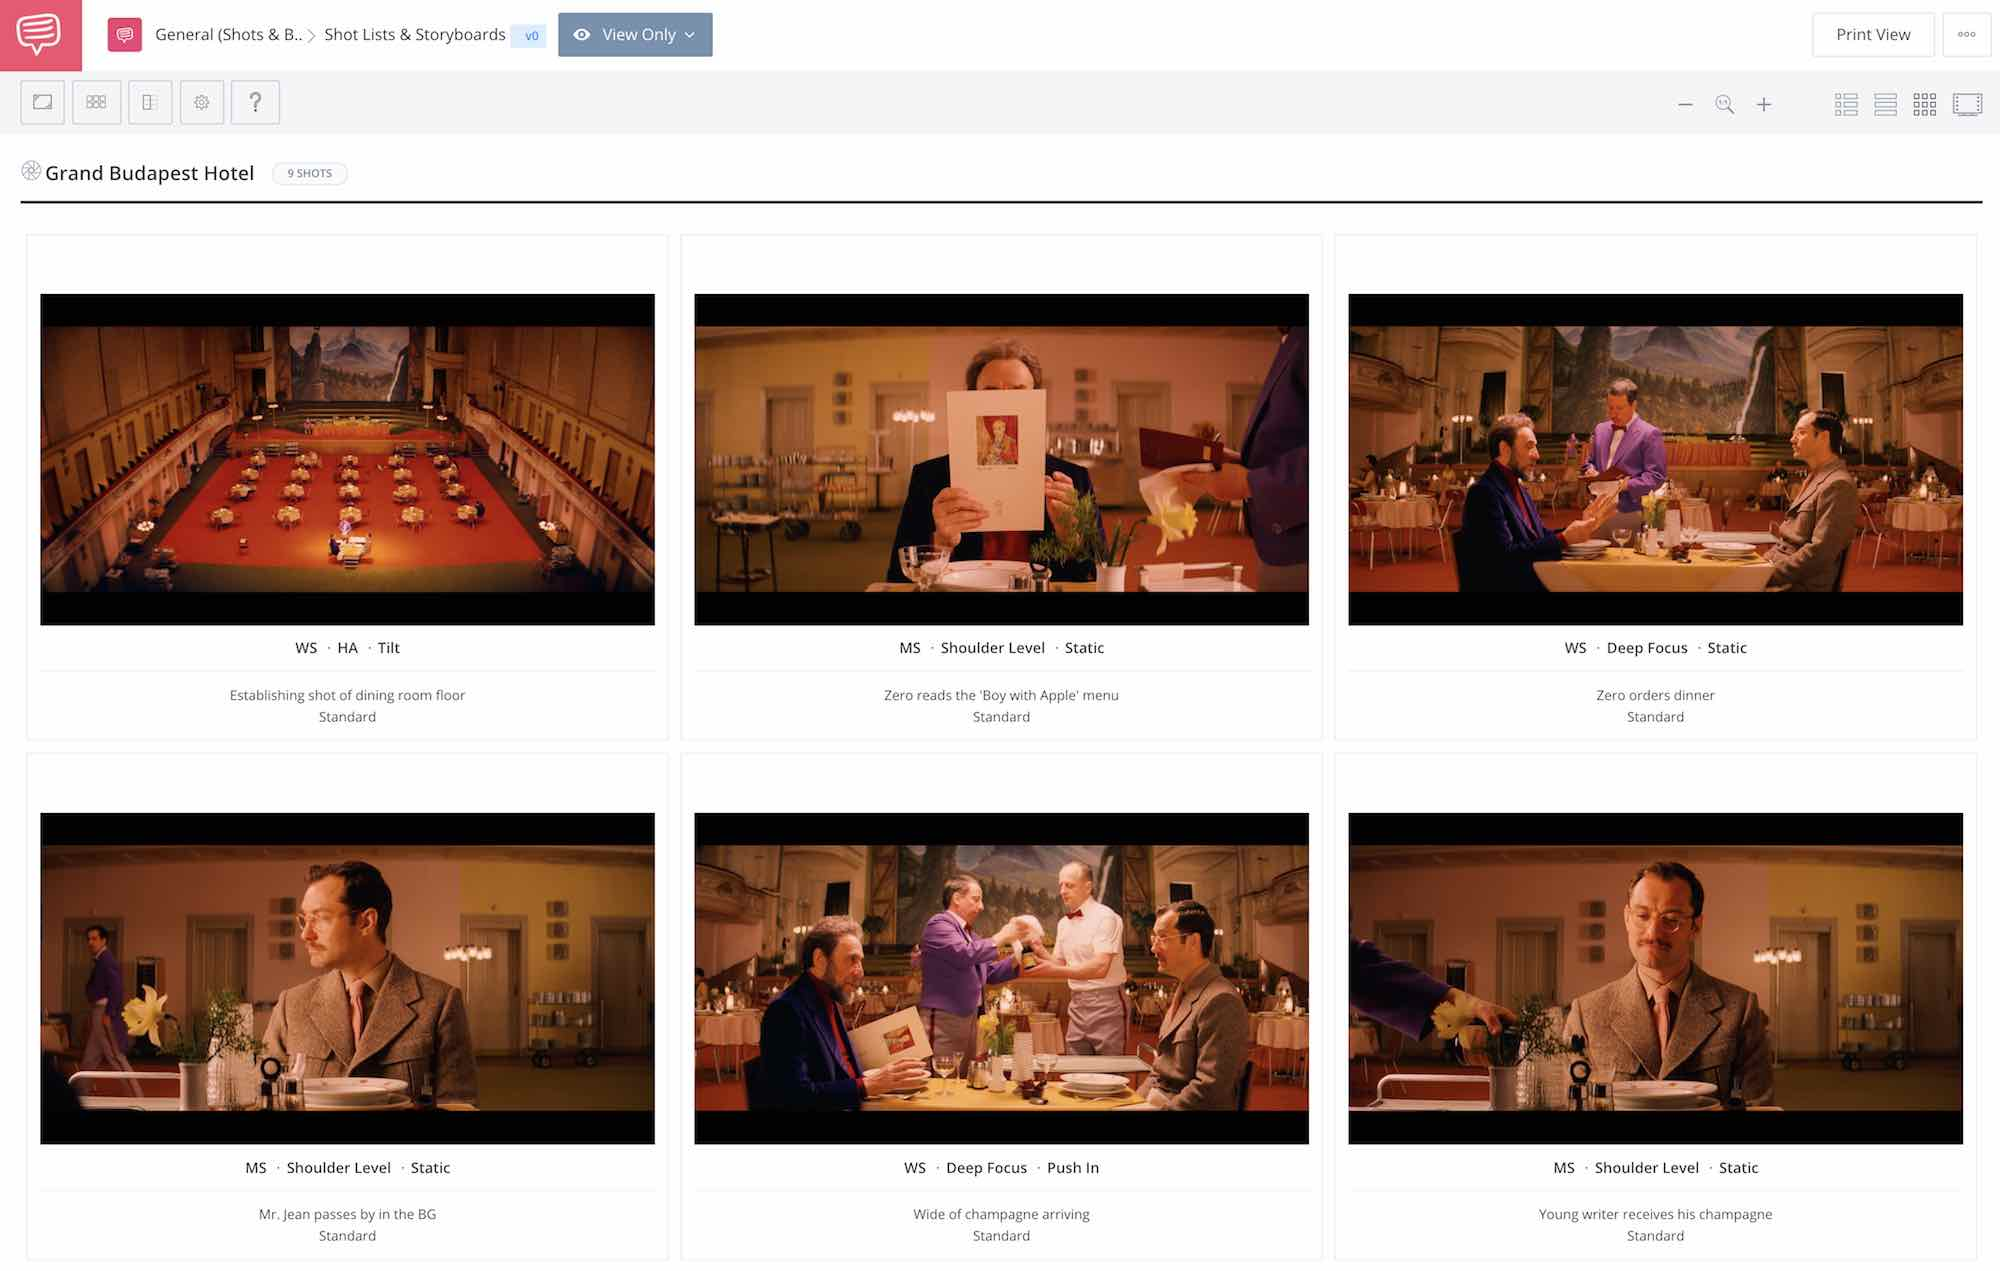 Wes Anderson Style - The Grand Budapest Hotel - Shot List - StudioBinder